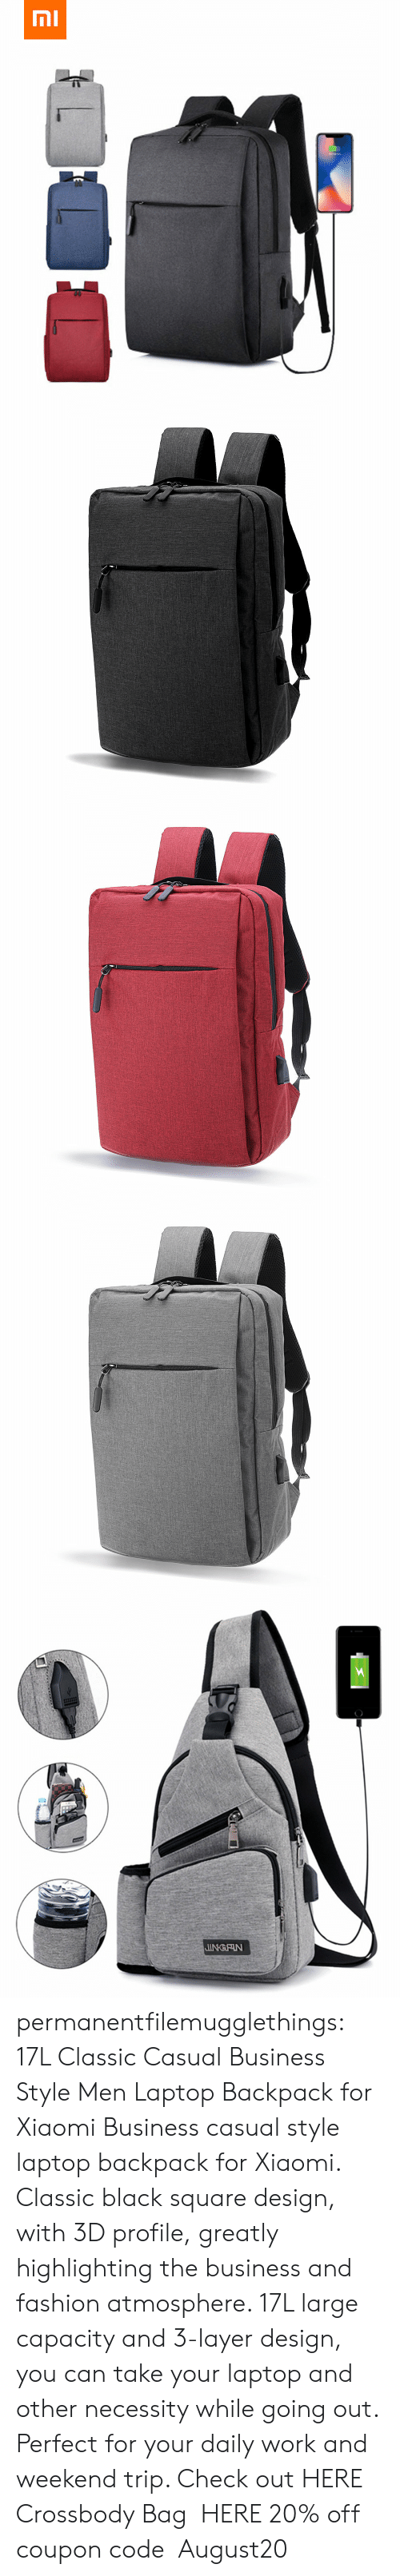 atmosphere: וח   NGPIN permanentfilemugglethings: 17L Classic Casual Business Style Men Laptop Backpack for Xiaomi Business casual style laptop backpack for Xiaomi. Classic black square design, with 3D profile, greatly highlighting the business and fashion atmosphere. 17L large capacity and 3-layer design, you can take your laptop and other necessity while going out. Perfect for your daily work and weekend trip.  Check out HERE Crossbody Bag HERE 20% off coupon code:August20